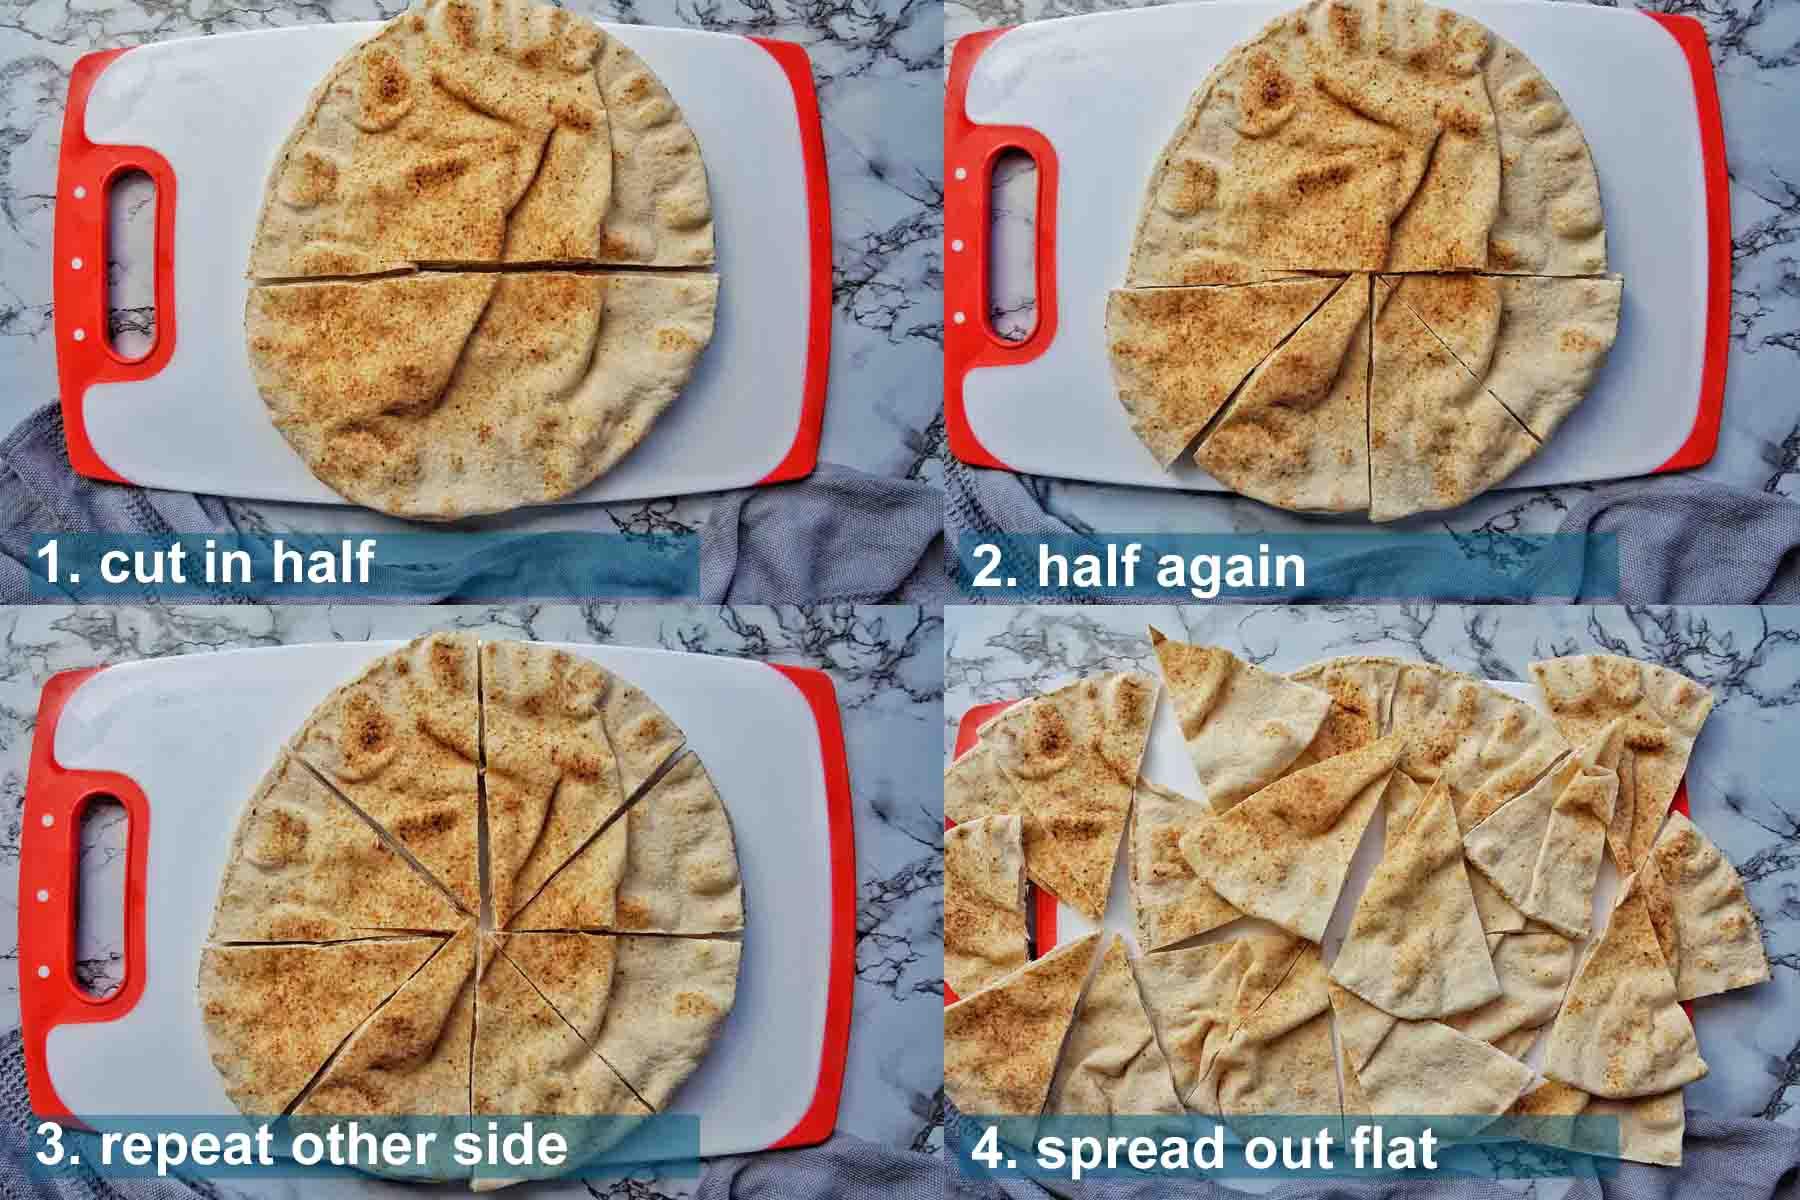 Method for Fir Frying pita chips 1 to 4